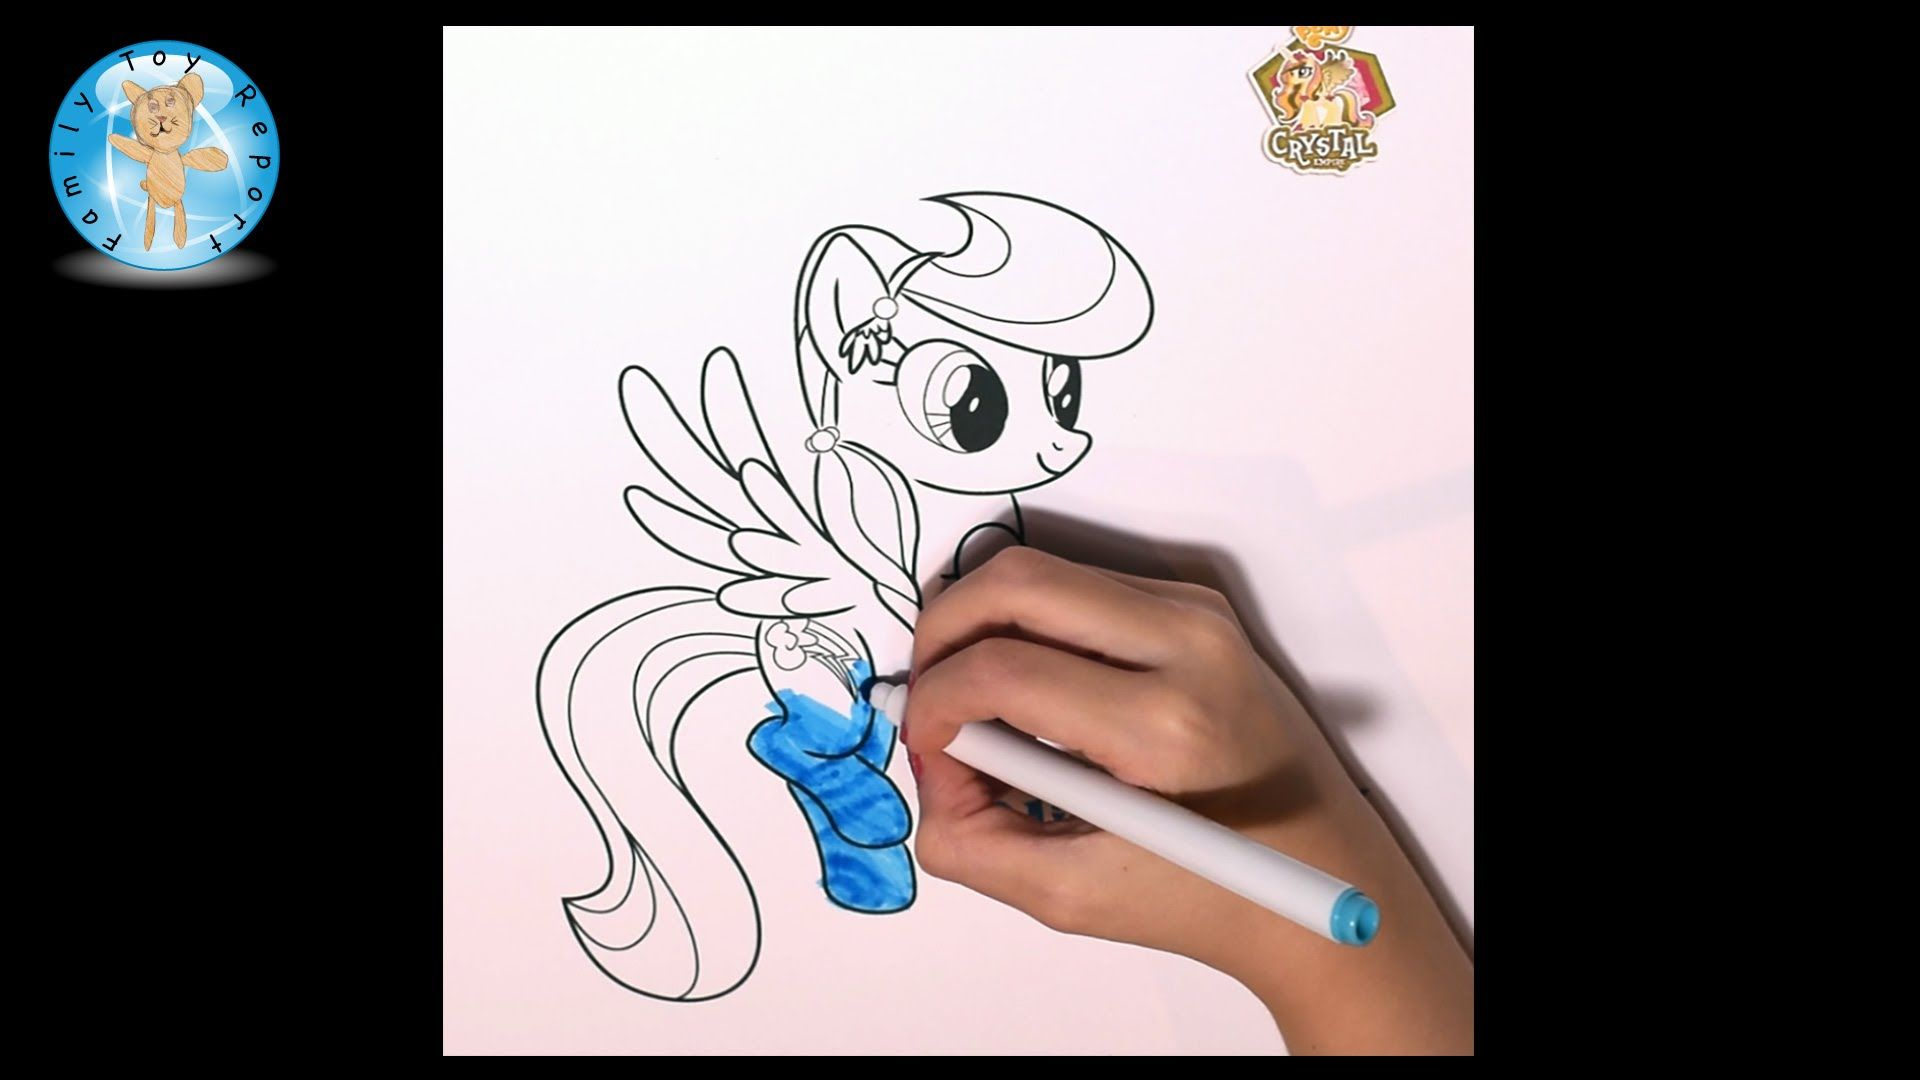 My Little Pony Coloring Pages Hd : My little pony rainbow dash coloring page crayola markers speed